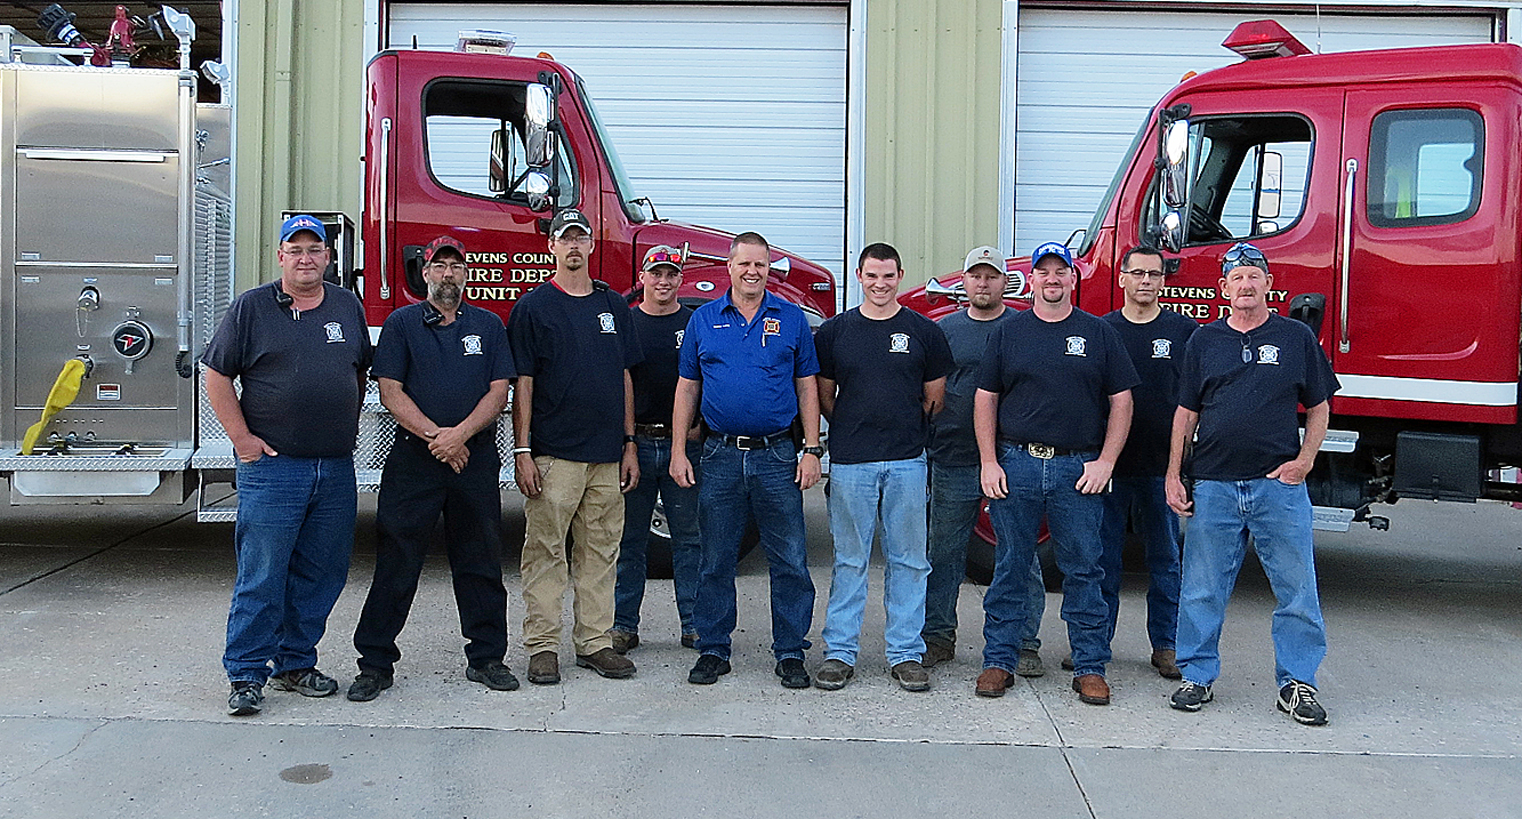 The Stevens County Fire Department Volunteers from Hugoton and Moscow are left to right, Phil Gooch, Melvan Vaughn, Michael Heston, Garrot Kilbourne, Chief Rodney Kelling, Bailey Esarey, Rickey Burrows, Kyle Lewis, Ed Stevenson and Randall Maxwell.  Make sure to show your appreciation this week in honor of Fire Prevention Week October 9-15.